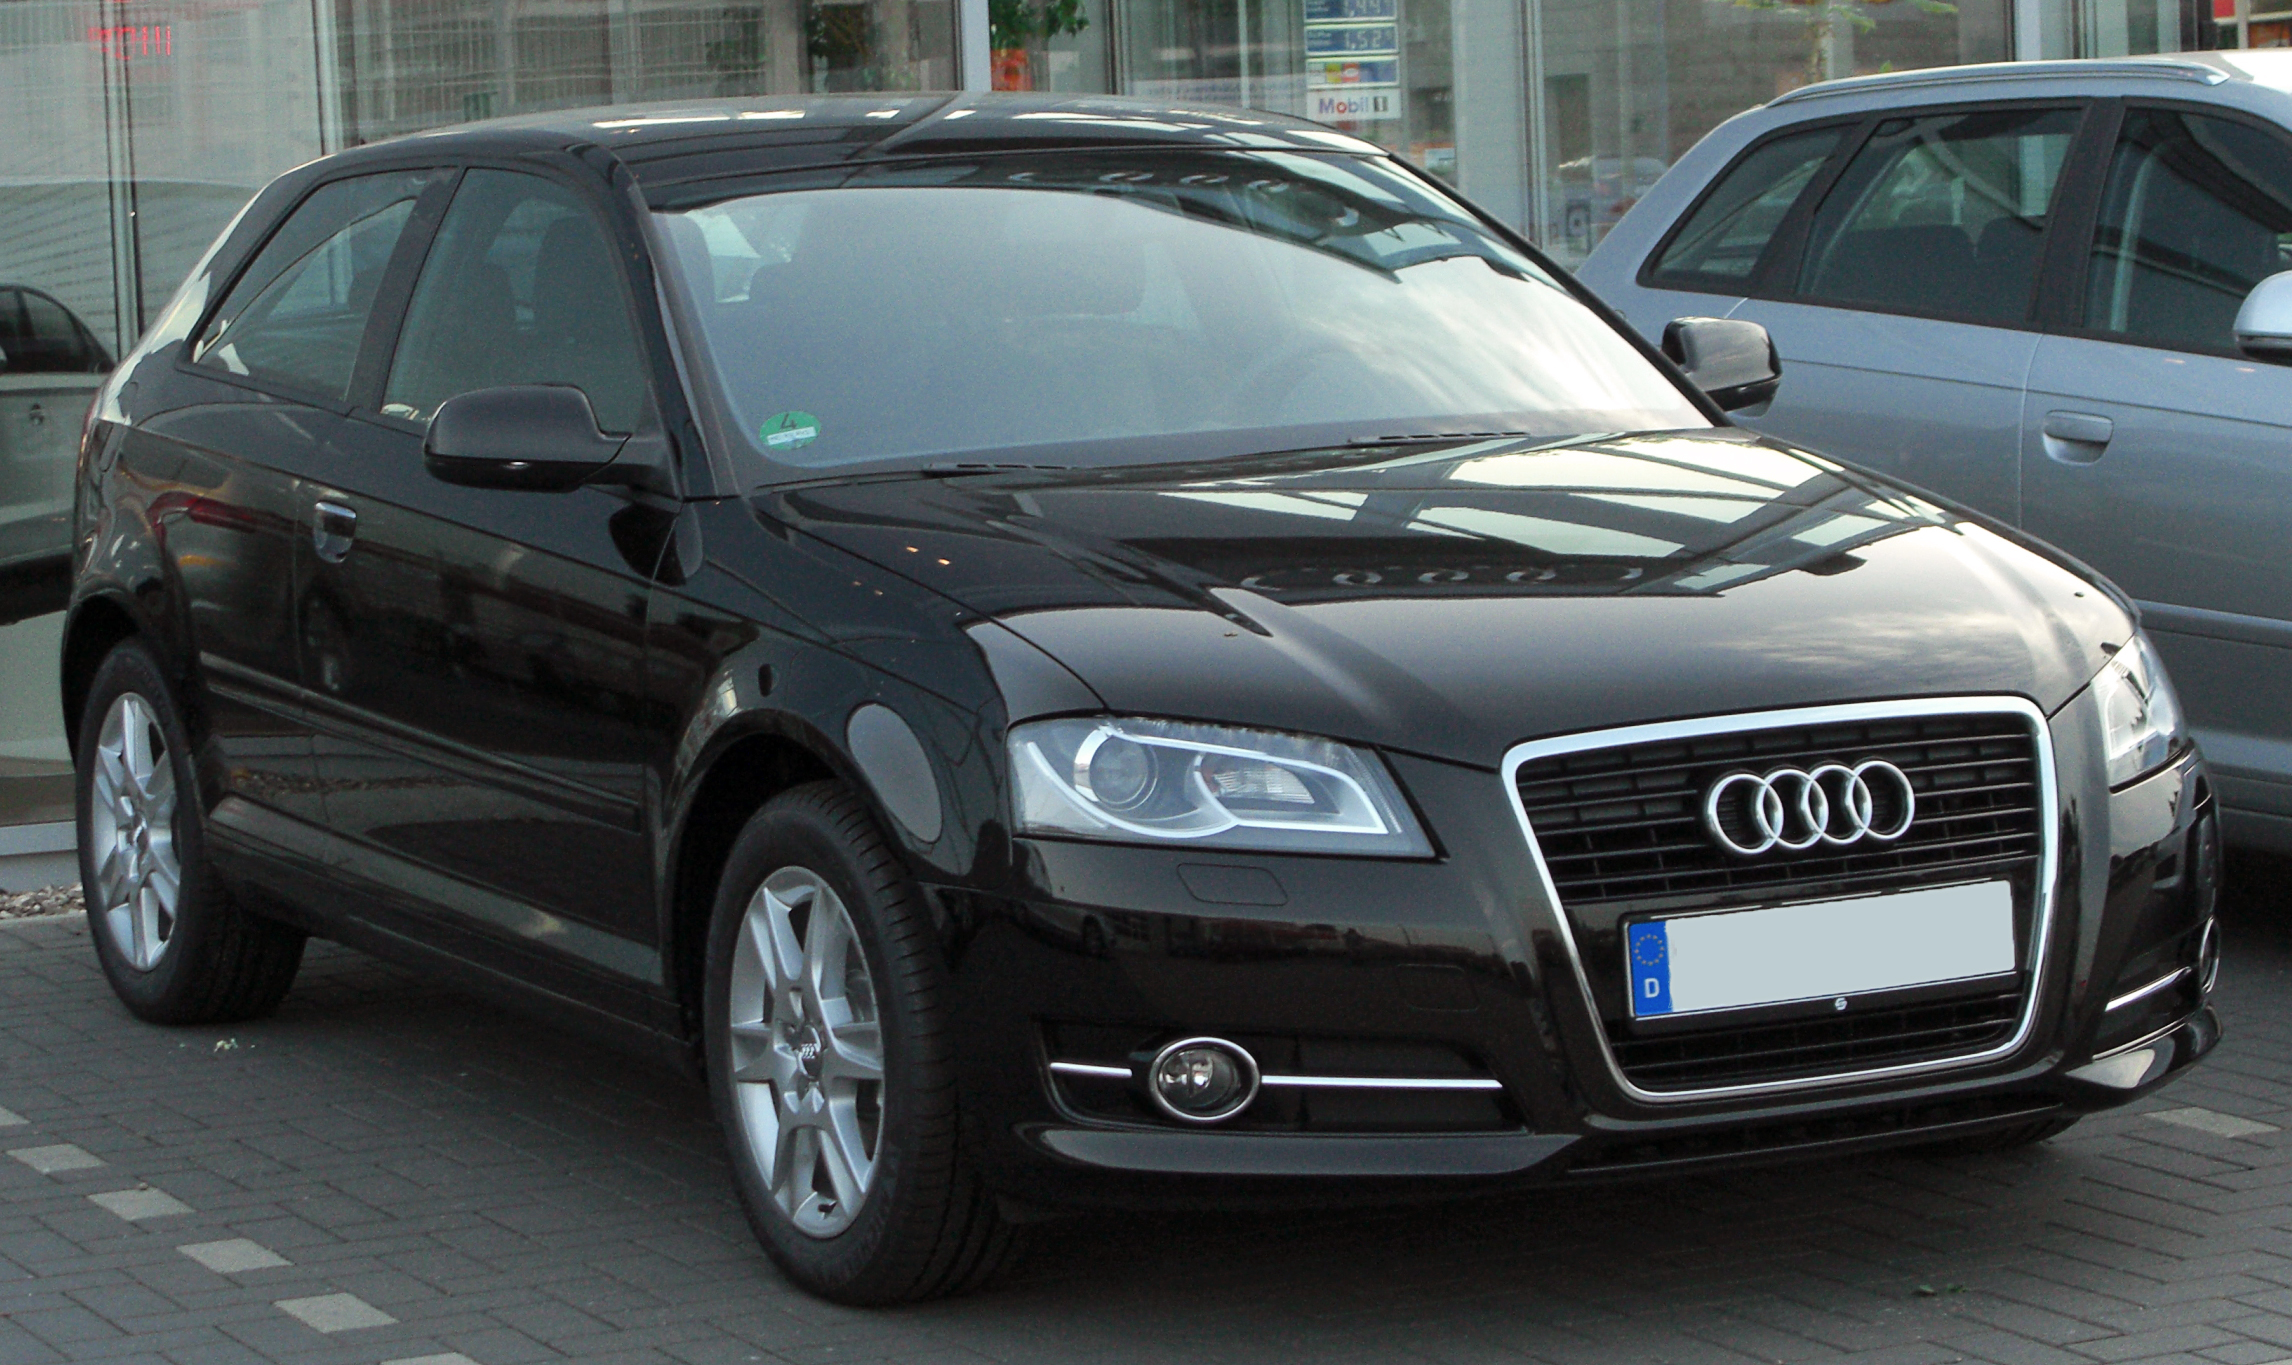 Audi S3 Wiki >> File:Audi A3 8P III. Facelift front 20100710.jpg - Wikimedia Commons